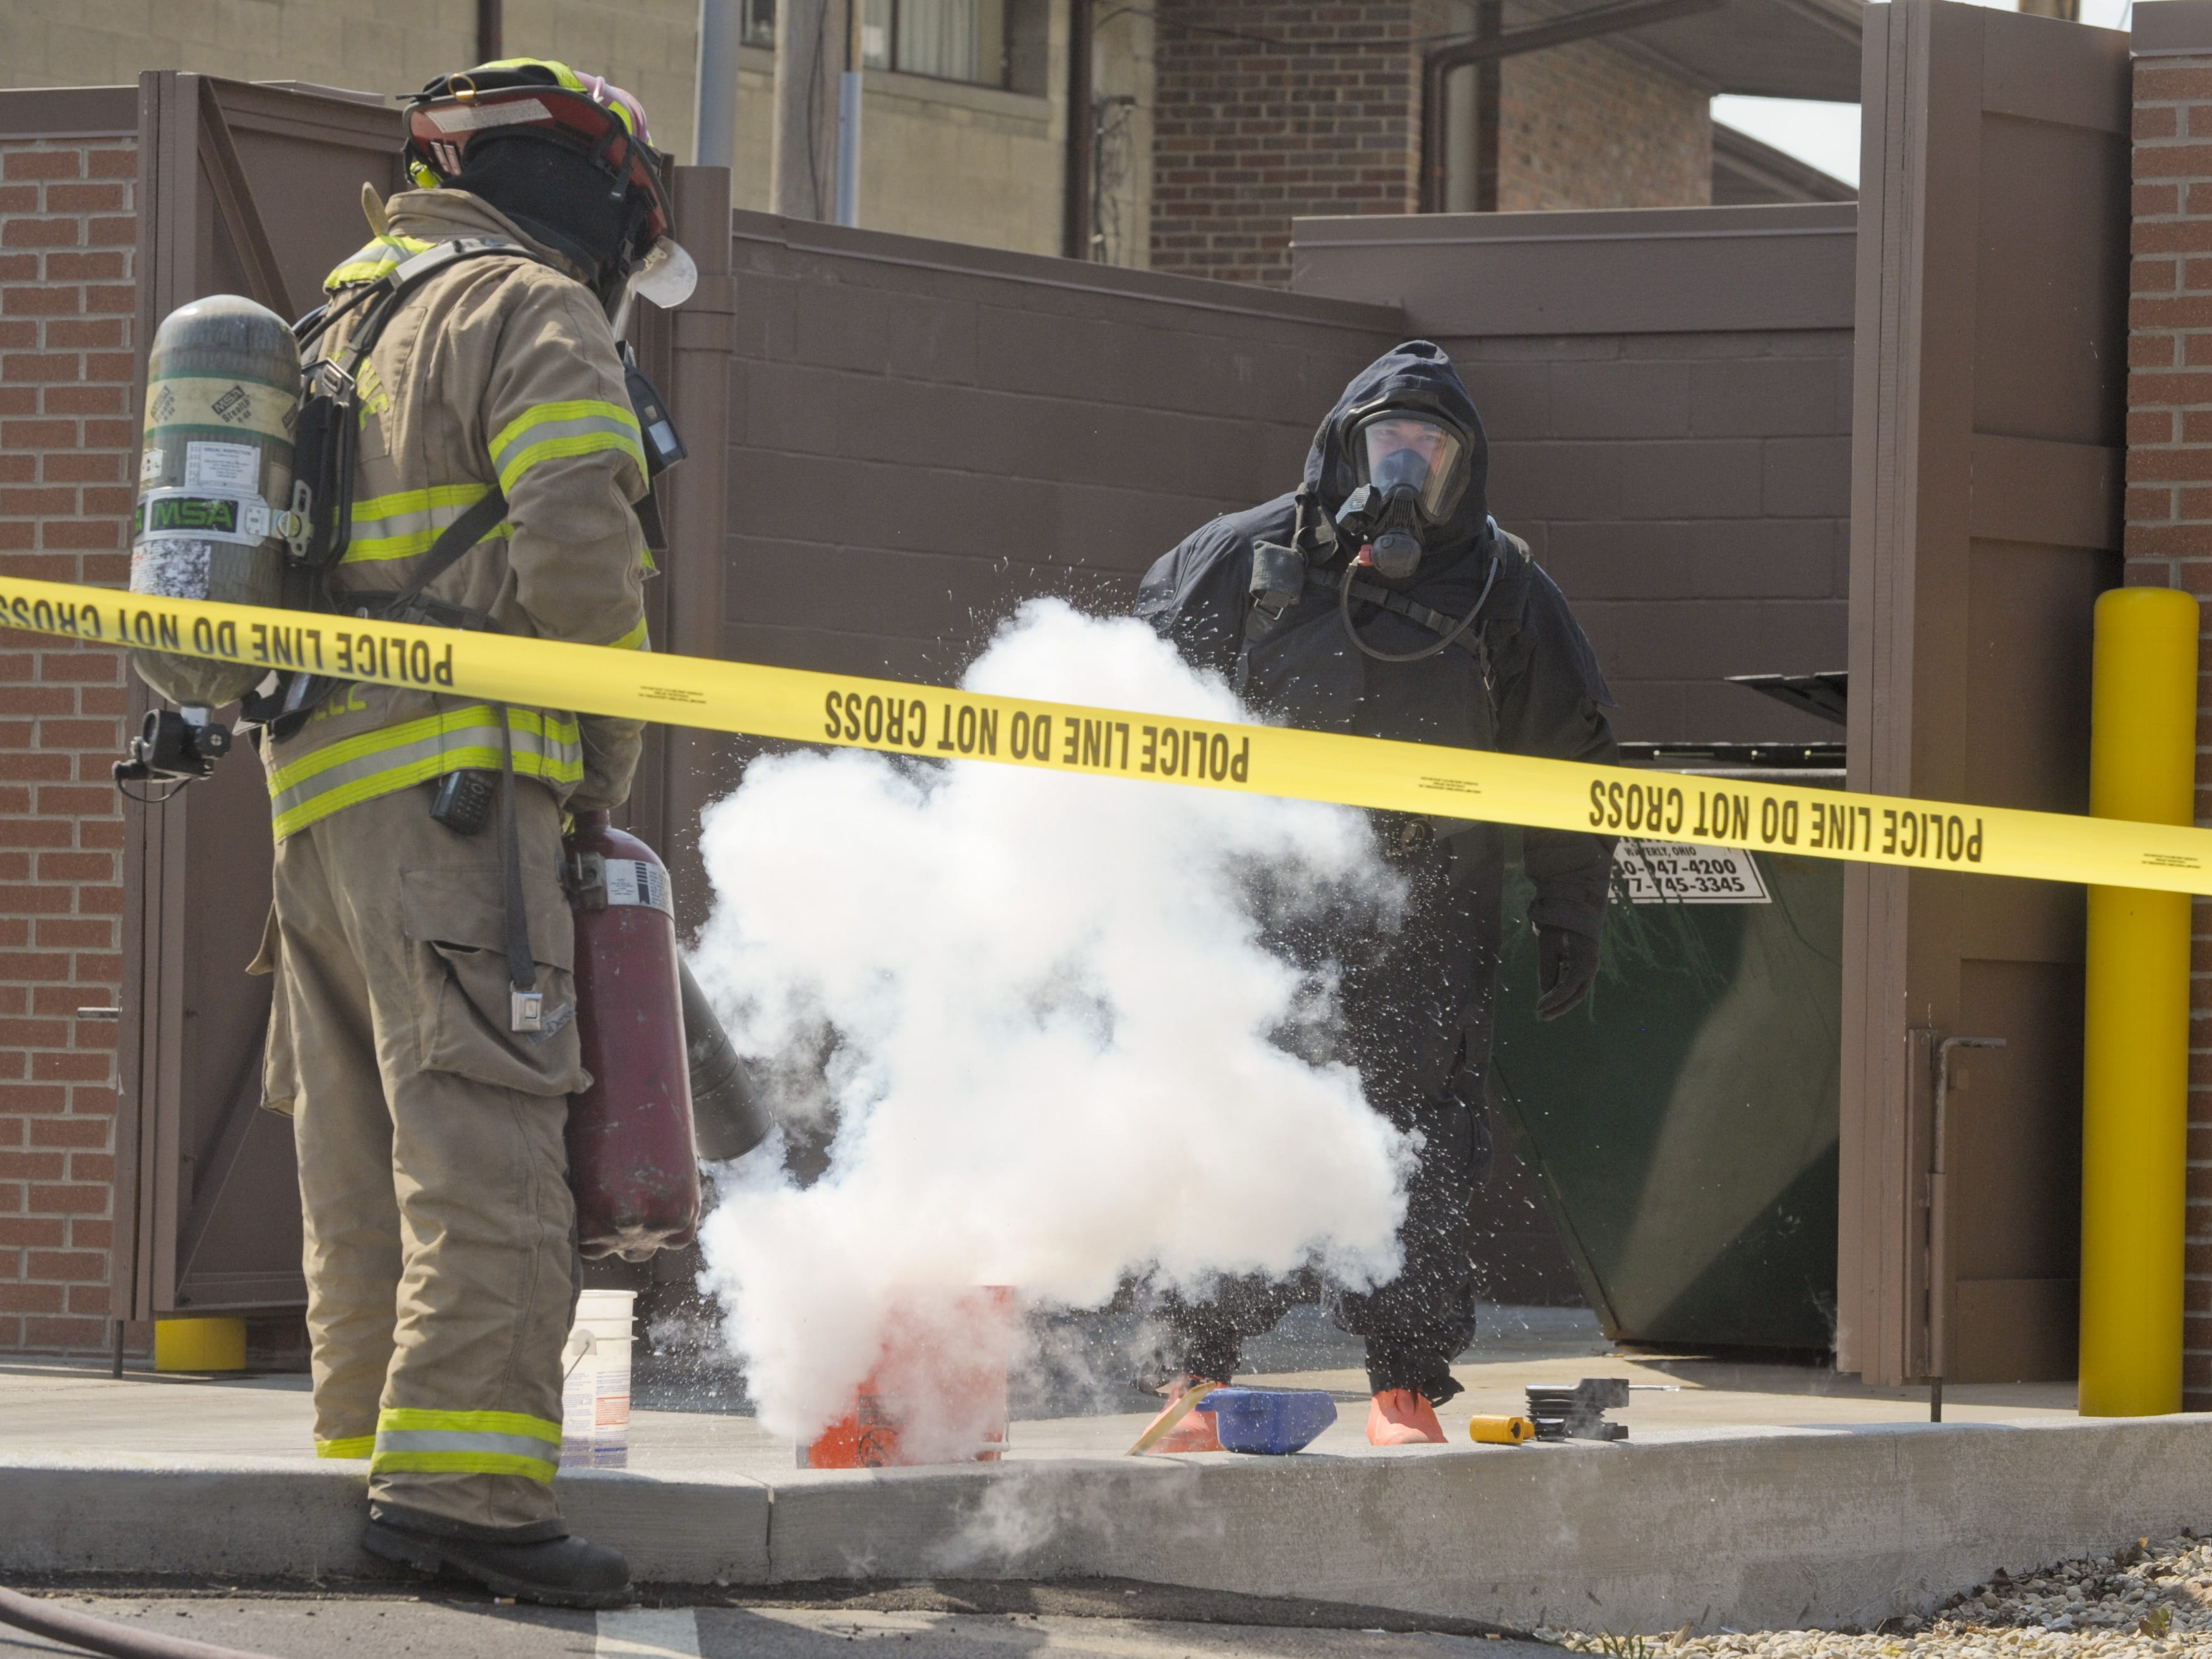 Captain Dave Russell of the Chillicothe Fire Department, left, extinguishes a small fire while BCI Agent Dennis Lowe steps back during a meth lab cleanup in June 2012.